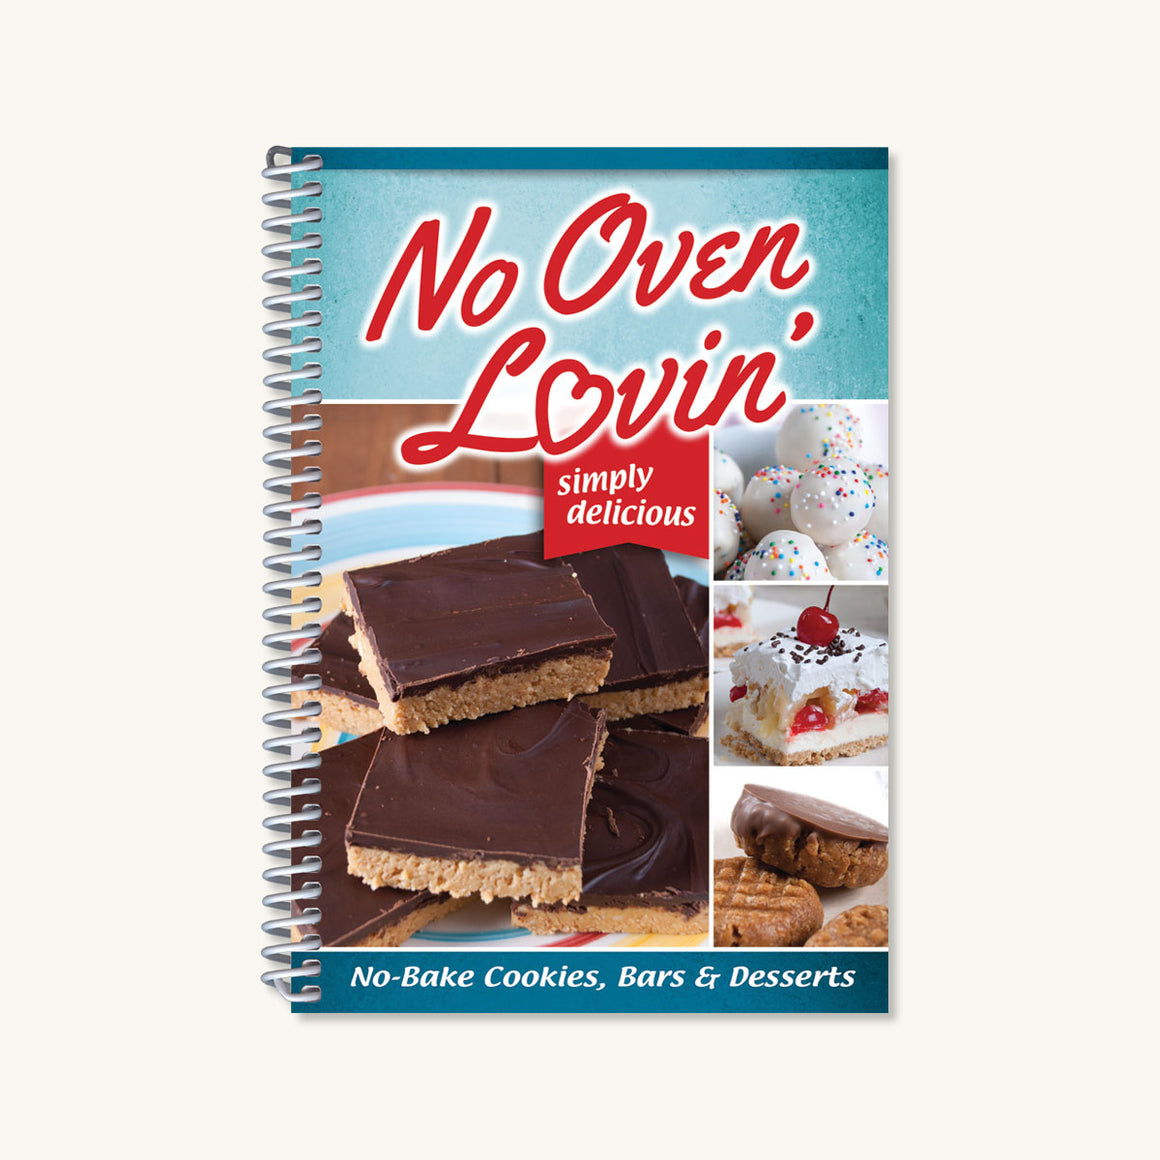 No Oven Lovin' Cookbook